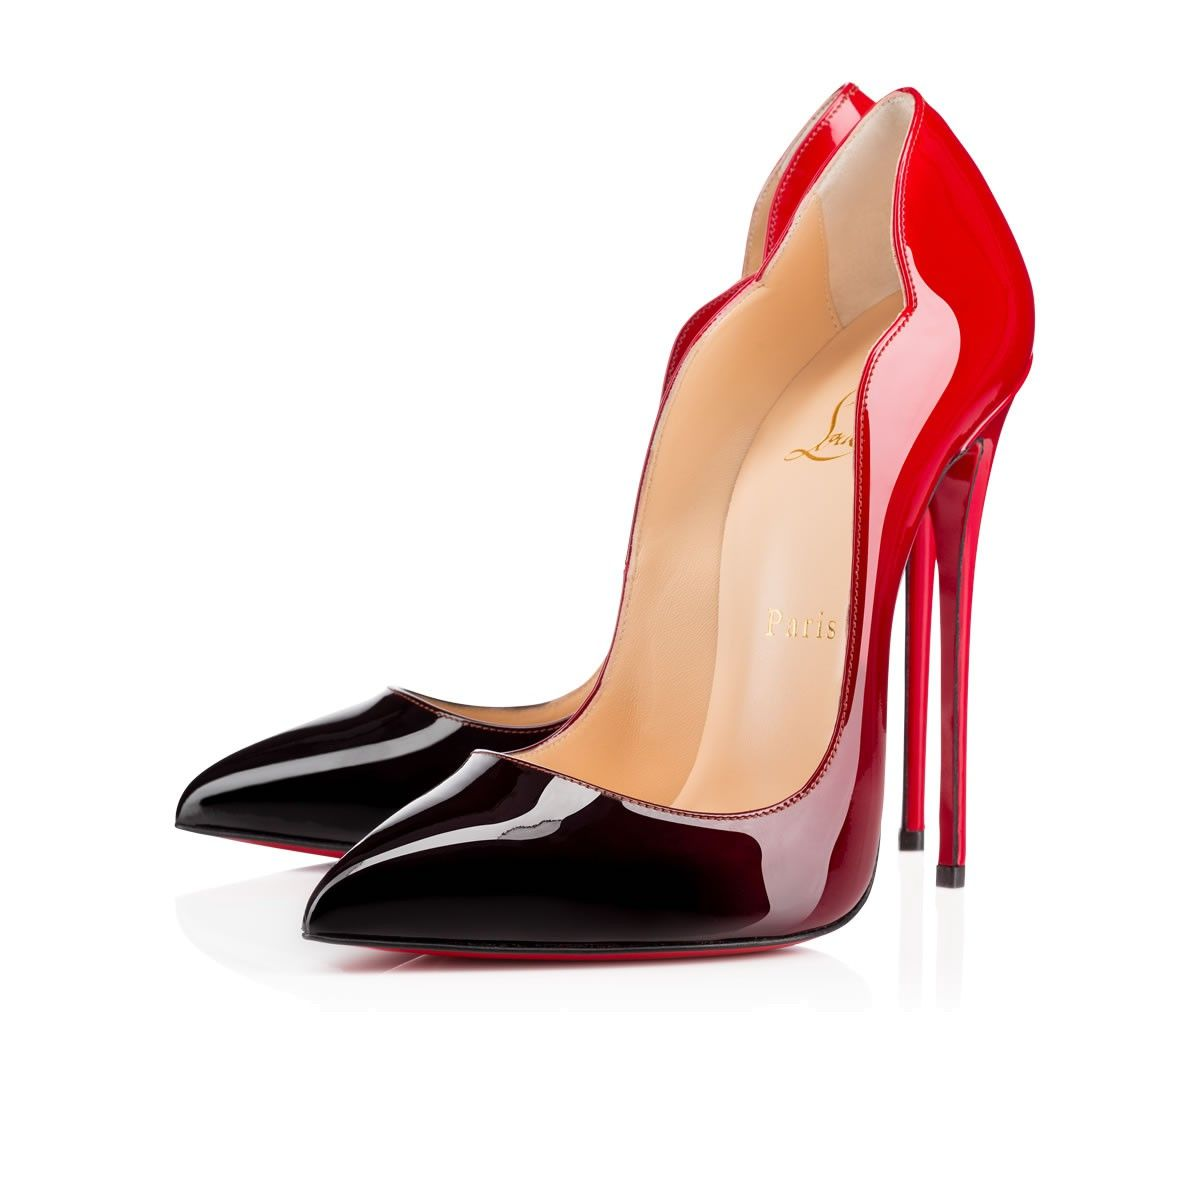 ae4c3a1c170 Red to Black Ombré Christian Louboutin Red Bottoms Pointed Toe High Heels  in Hot Chick